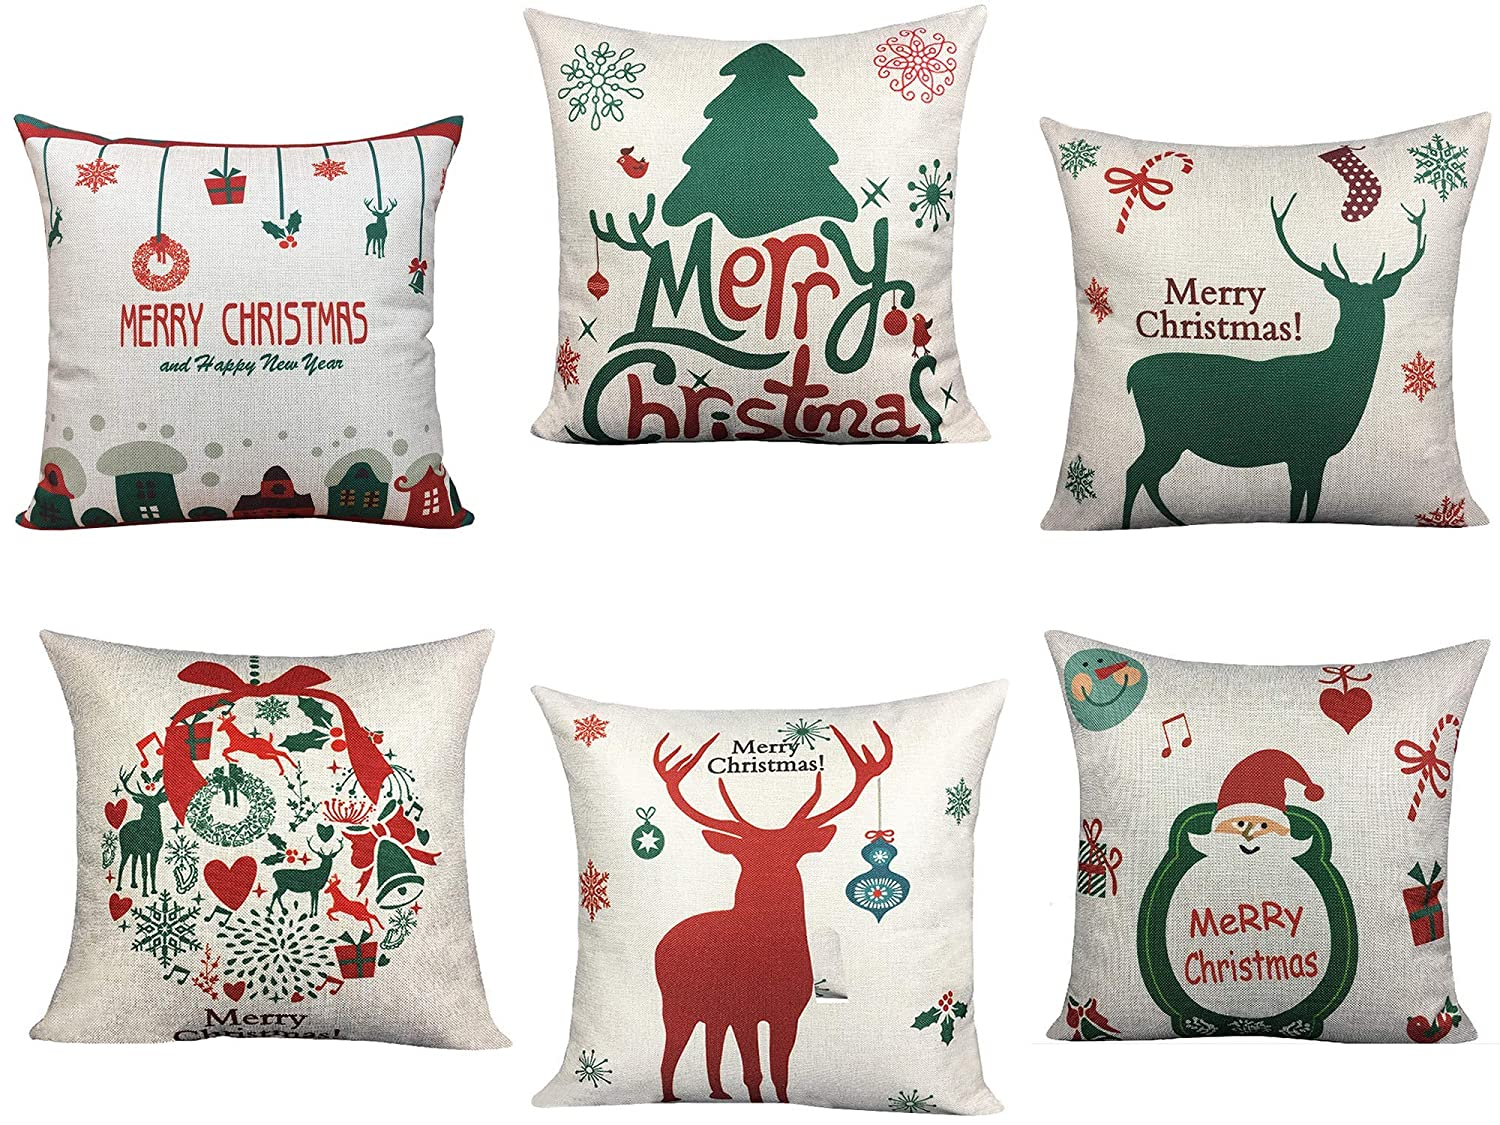 Christmas Pillows.Bluettek 6 Packs Christmas Pillows Covers Printed Santa Claus Christmas Tree Deer 18 X 18 Inch Christmas Decor Pillow Cases Cushion Covers For Bed